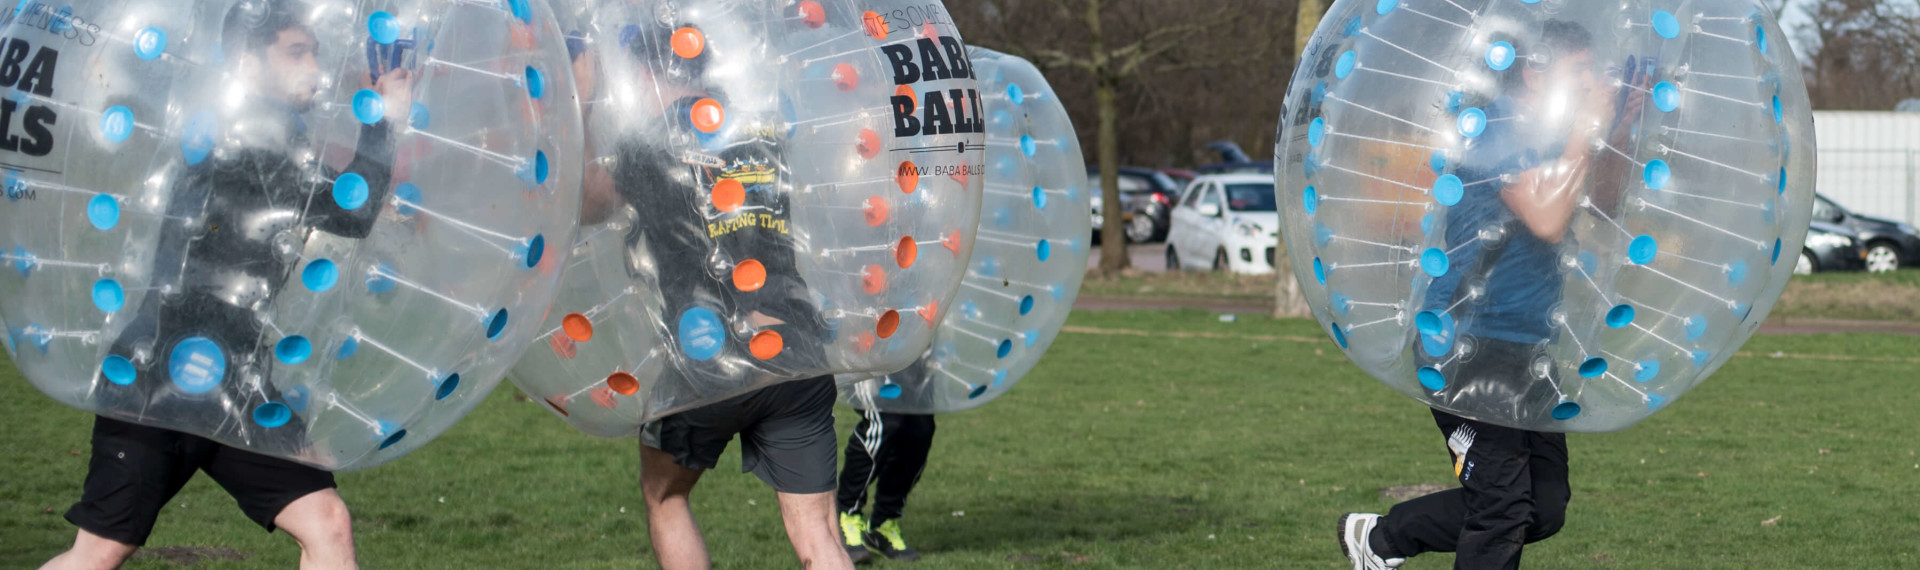 Amsterdam Bubble Football Outdoor image